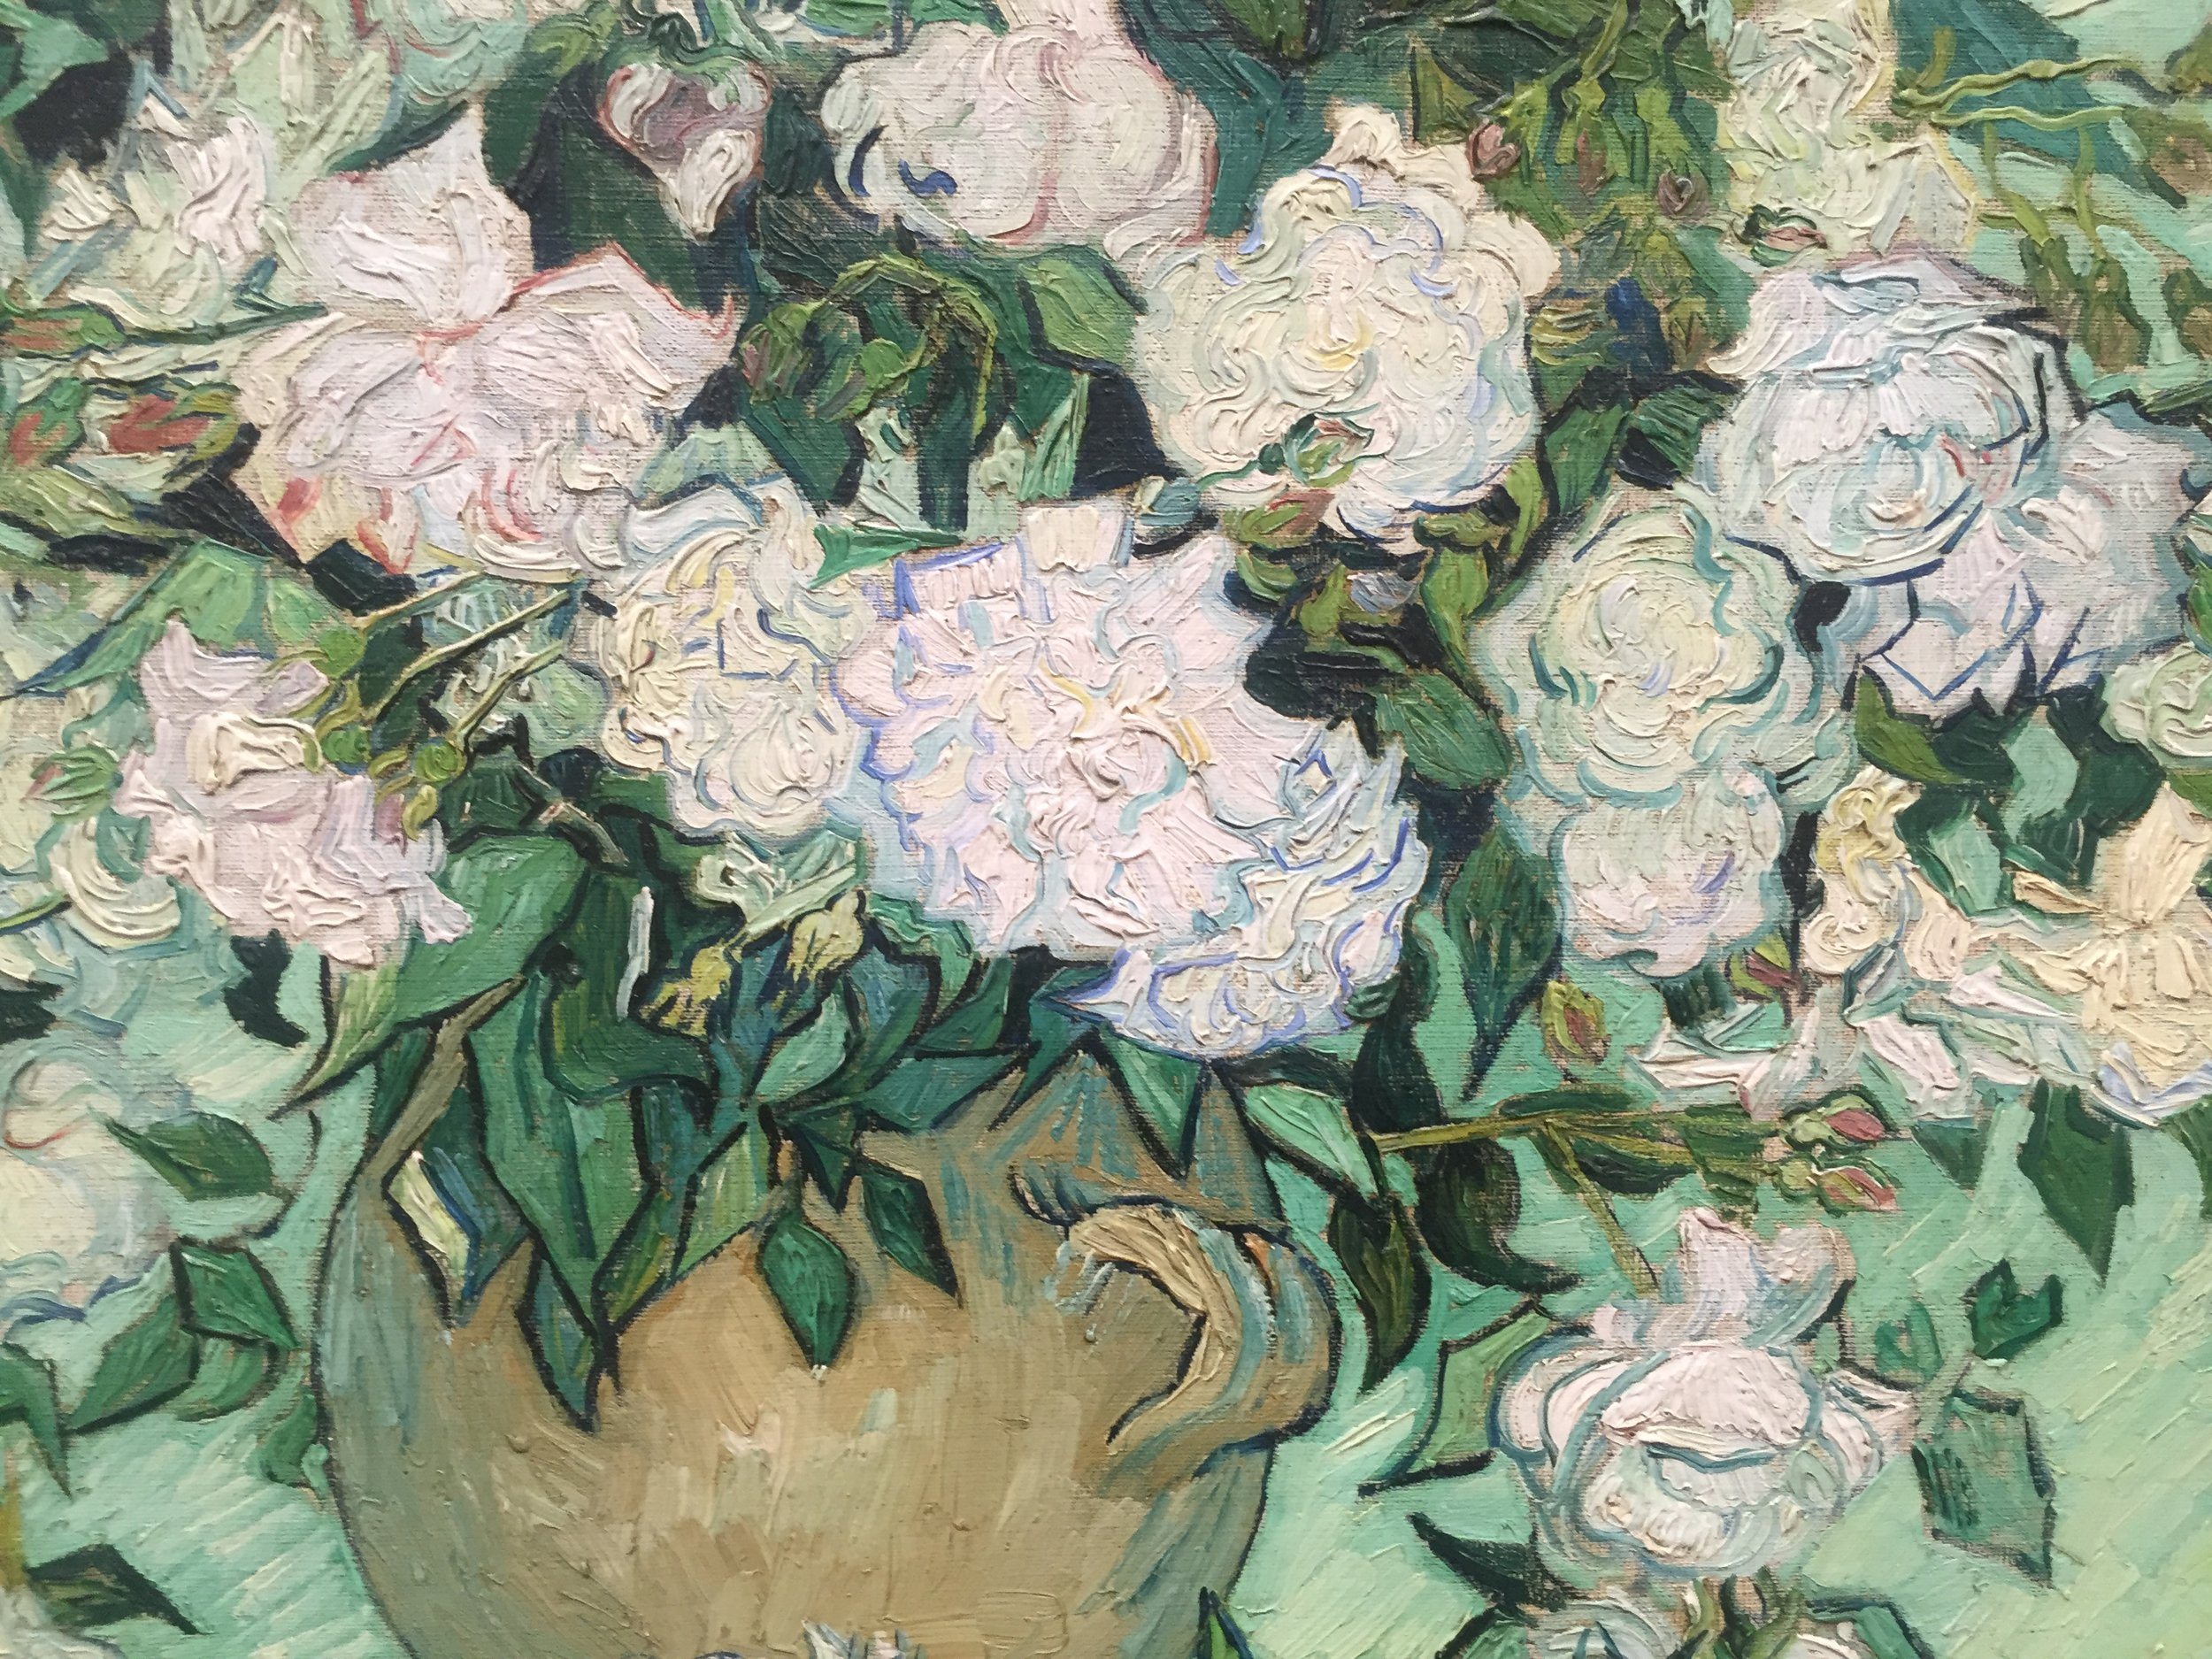 van gogh white flowers up close.JPG